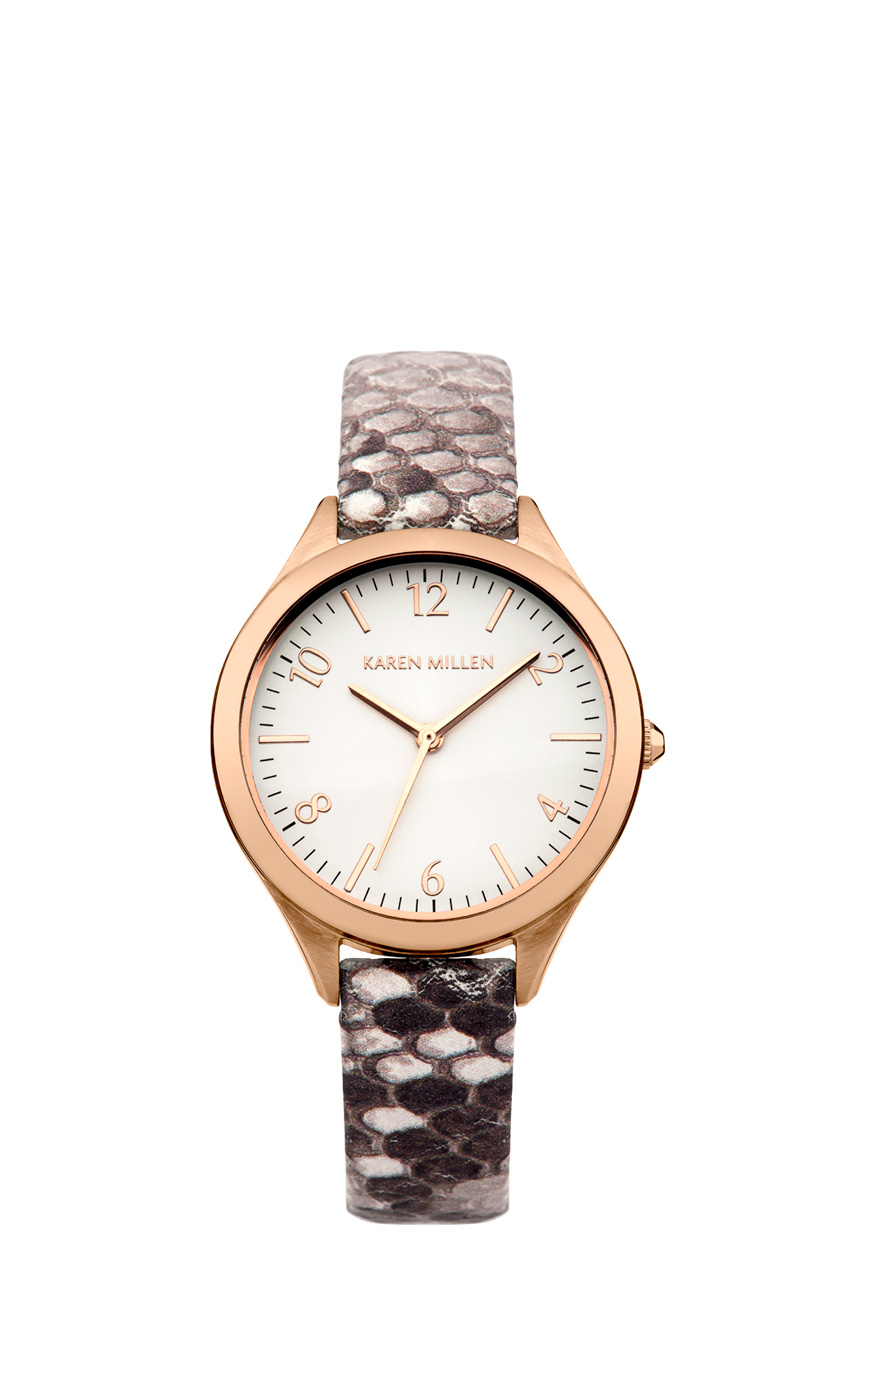 Karen Millen Python Effect Leather Watch